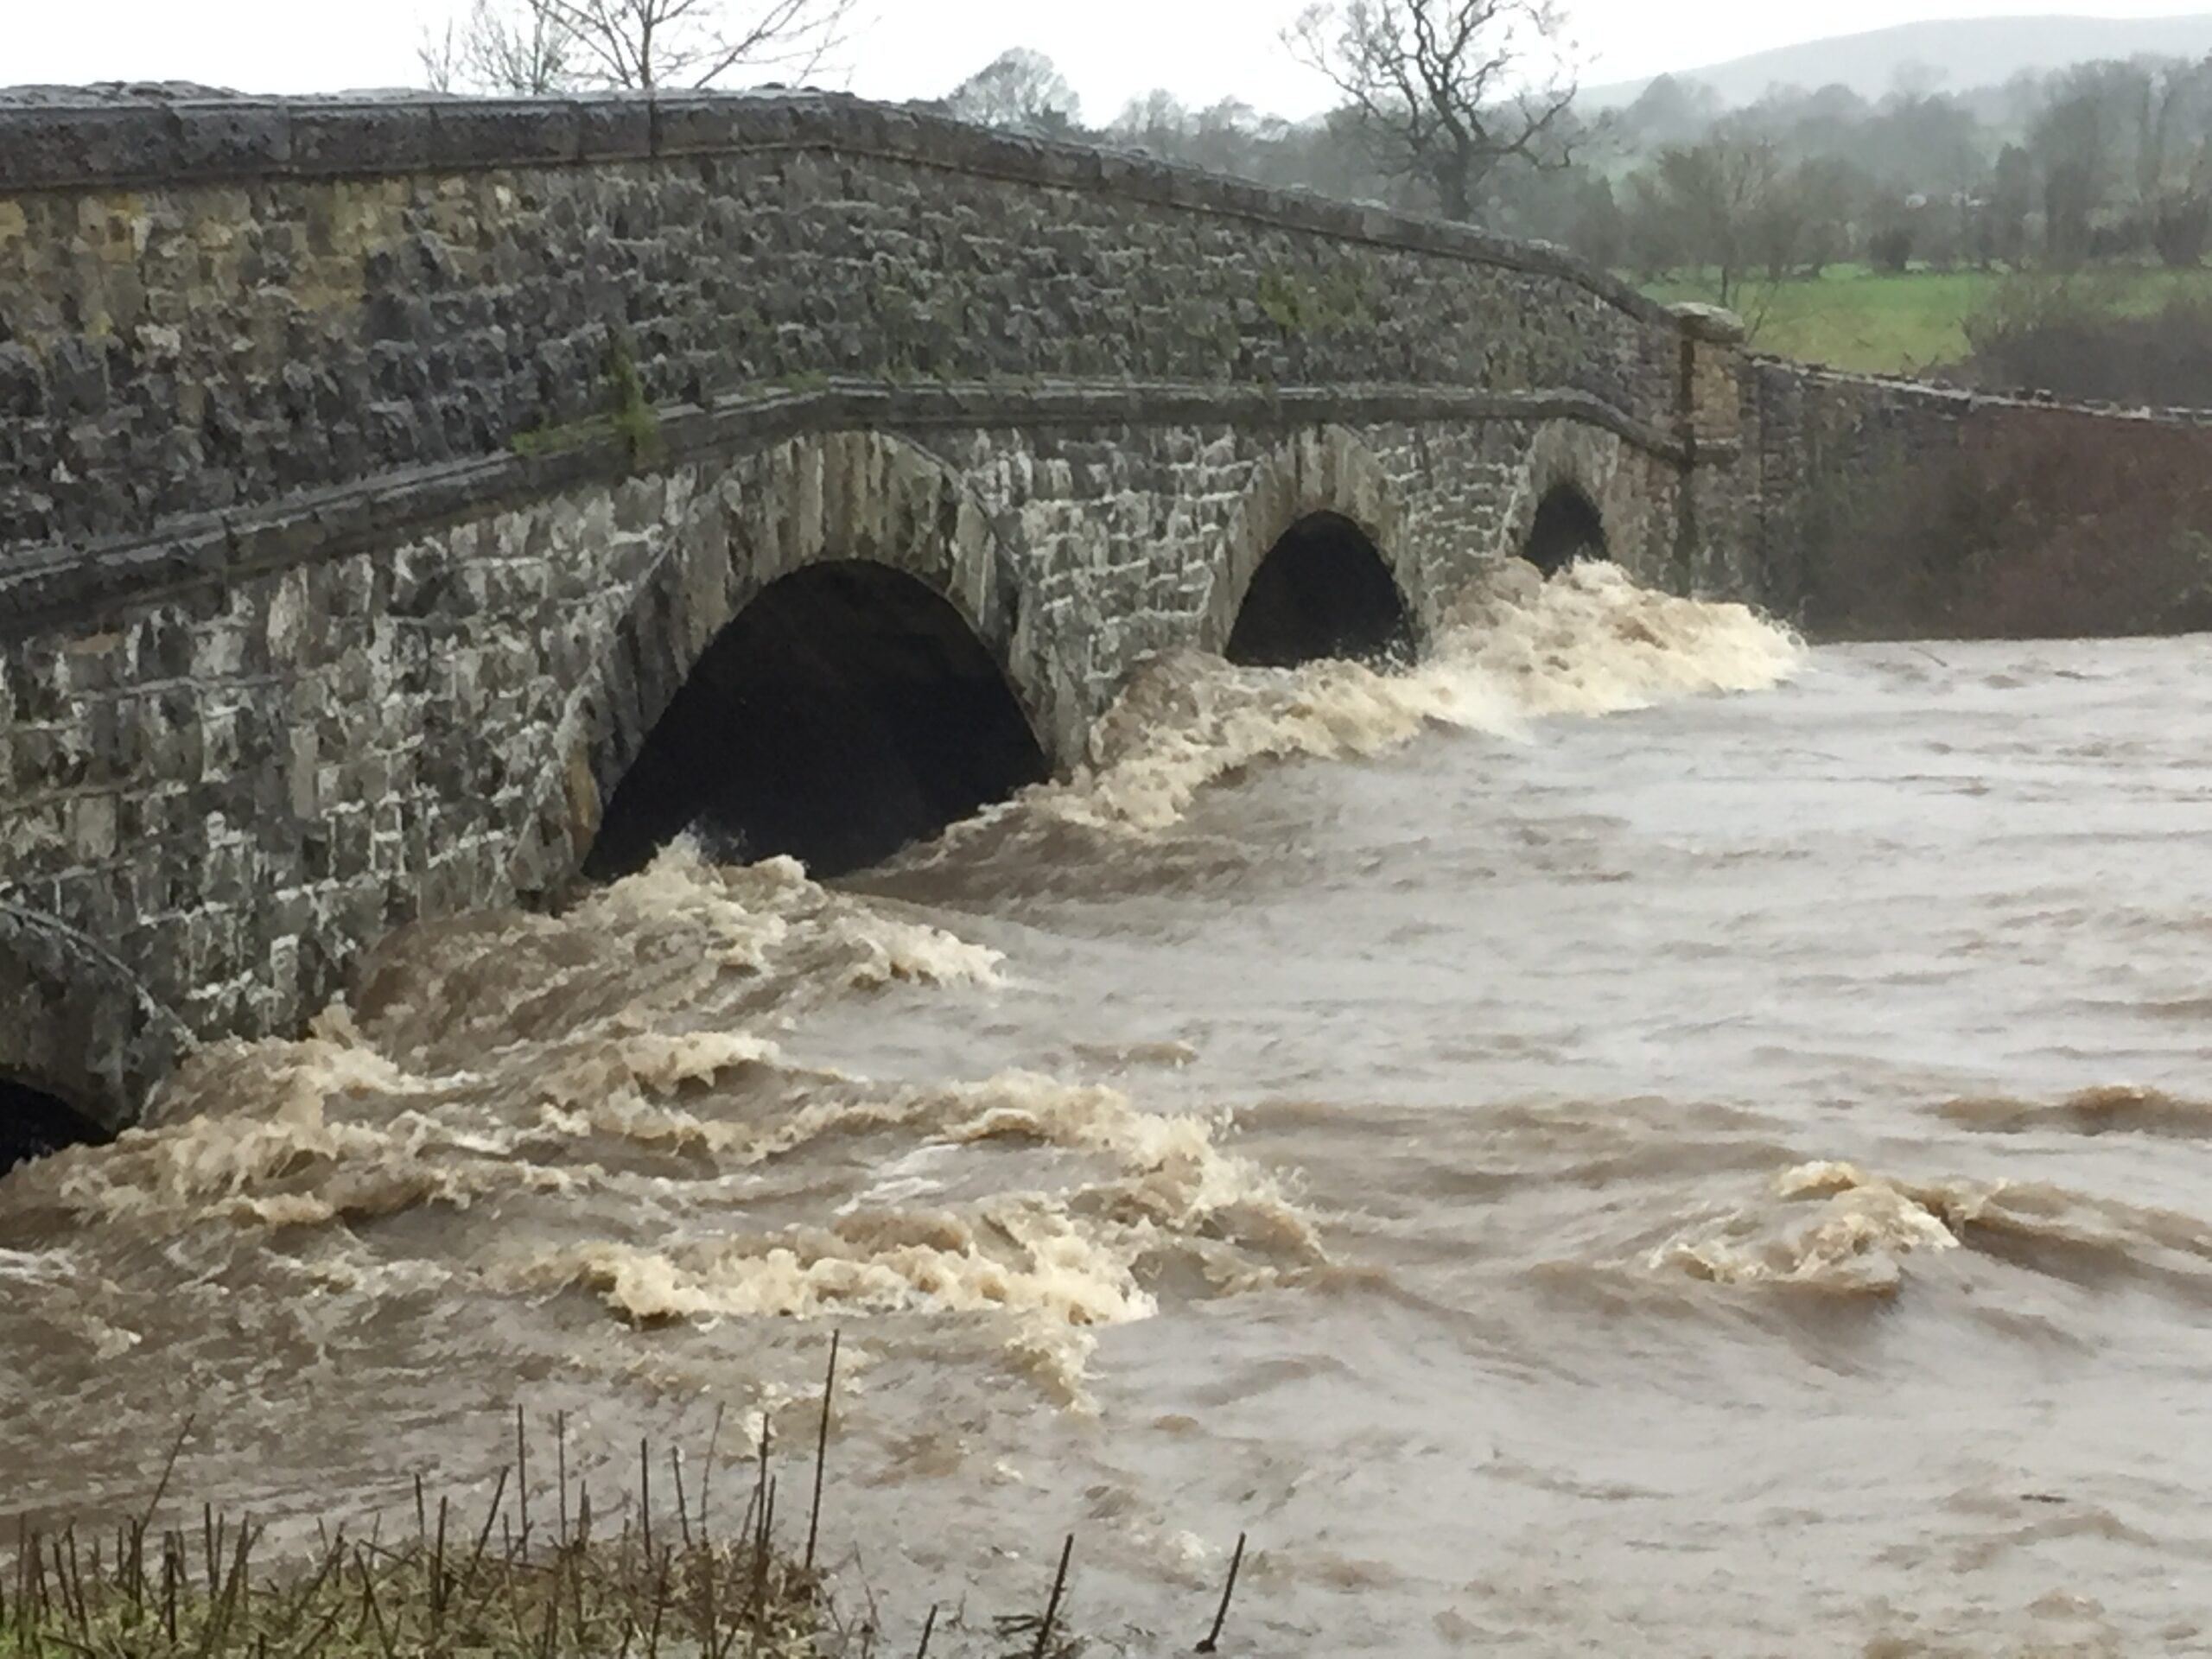 Rlibble in flood at West Bradford Bridge